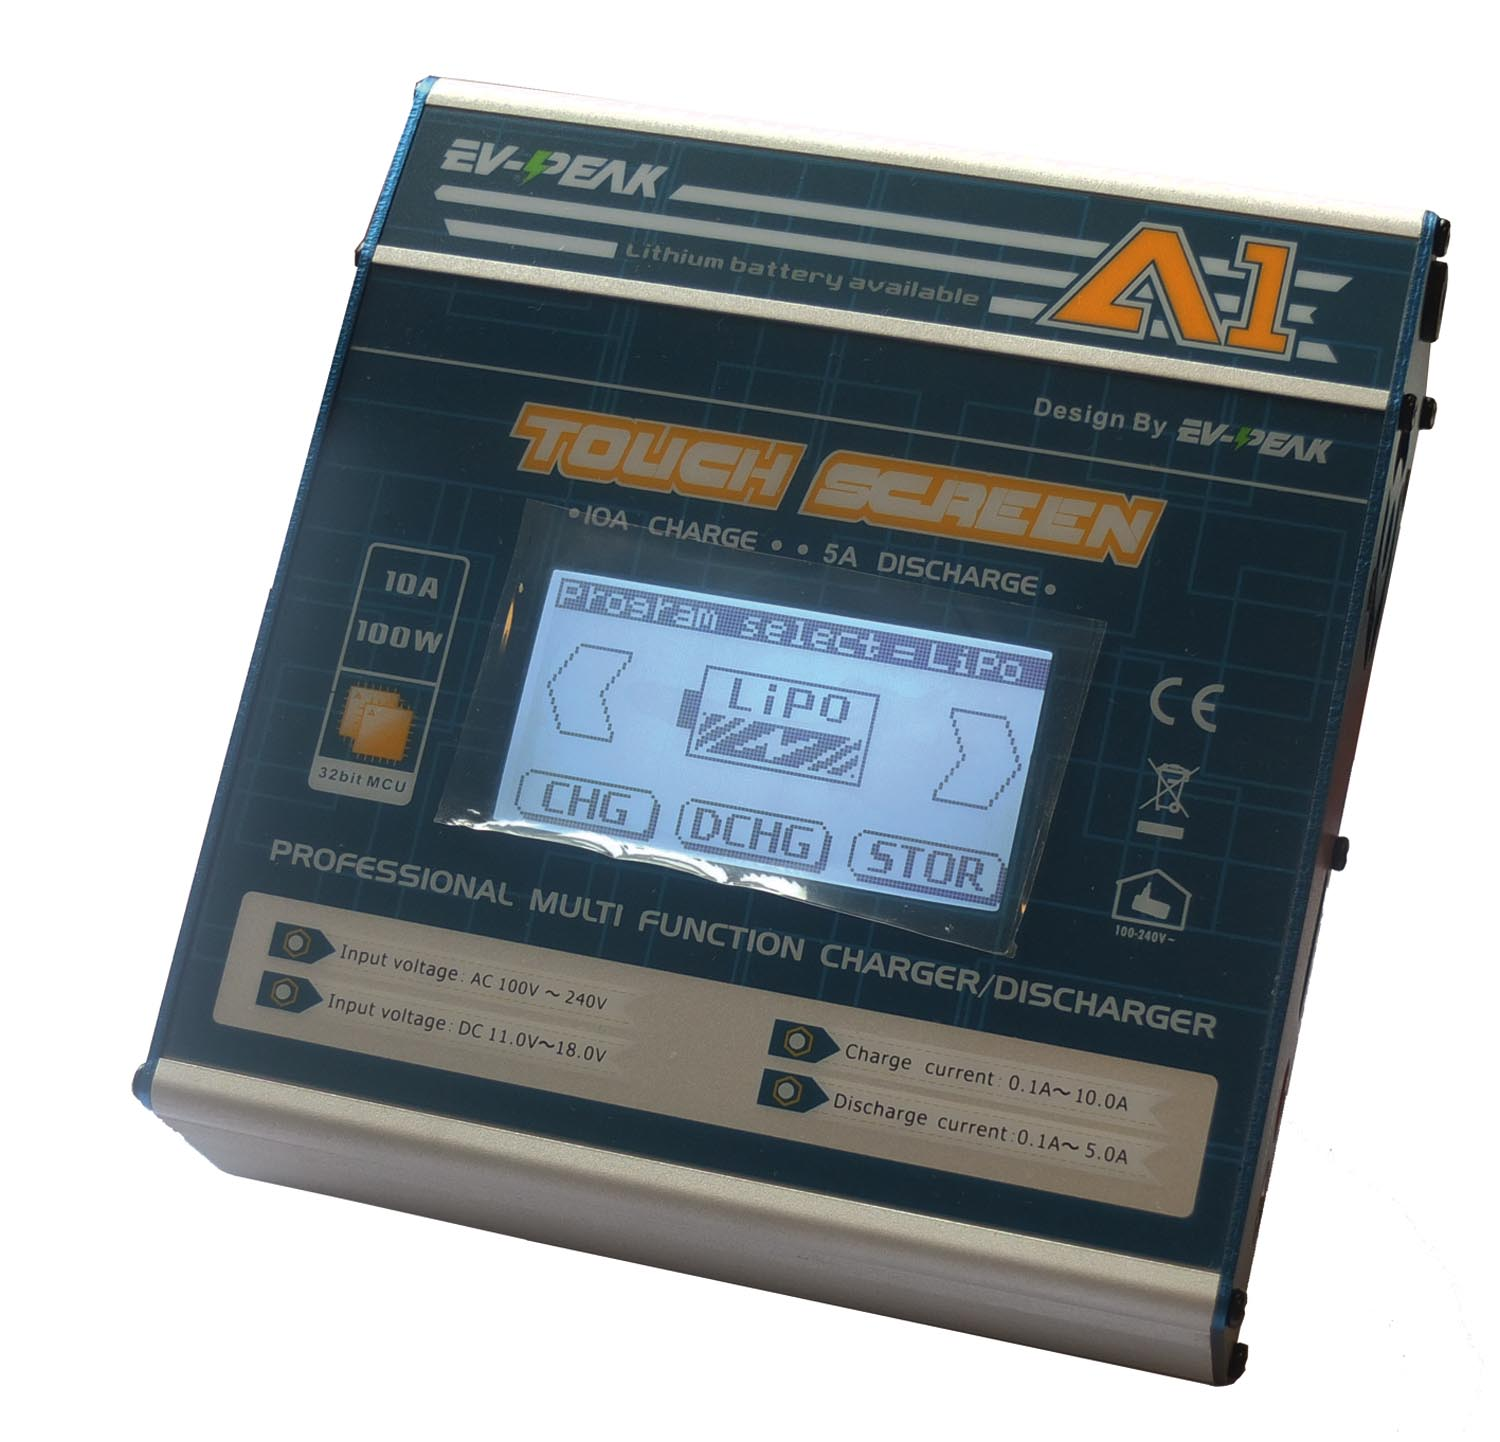 A1 100 Watt AC/DC Touch screen